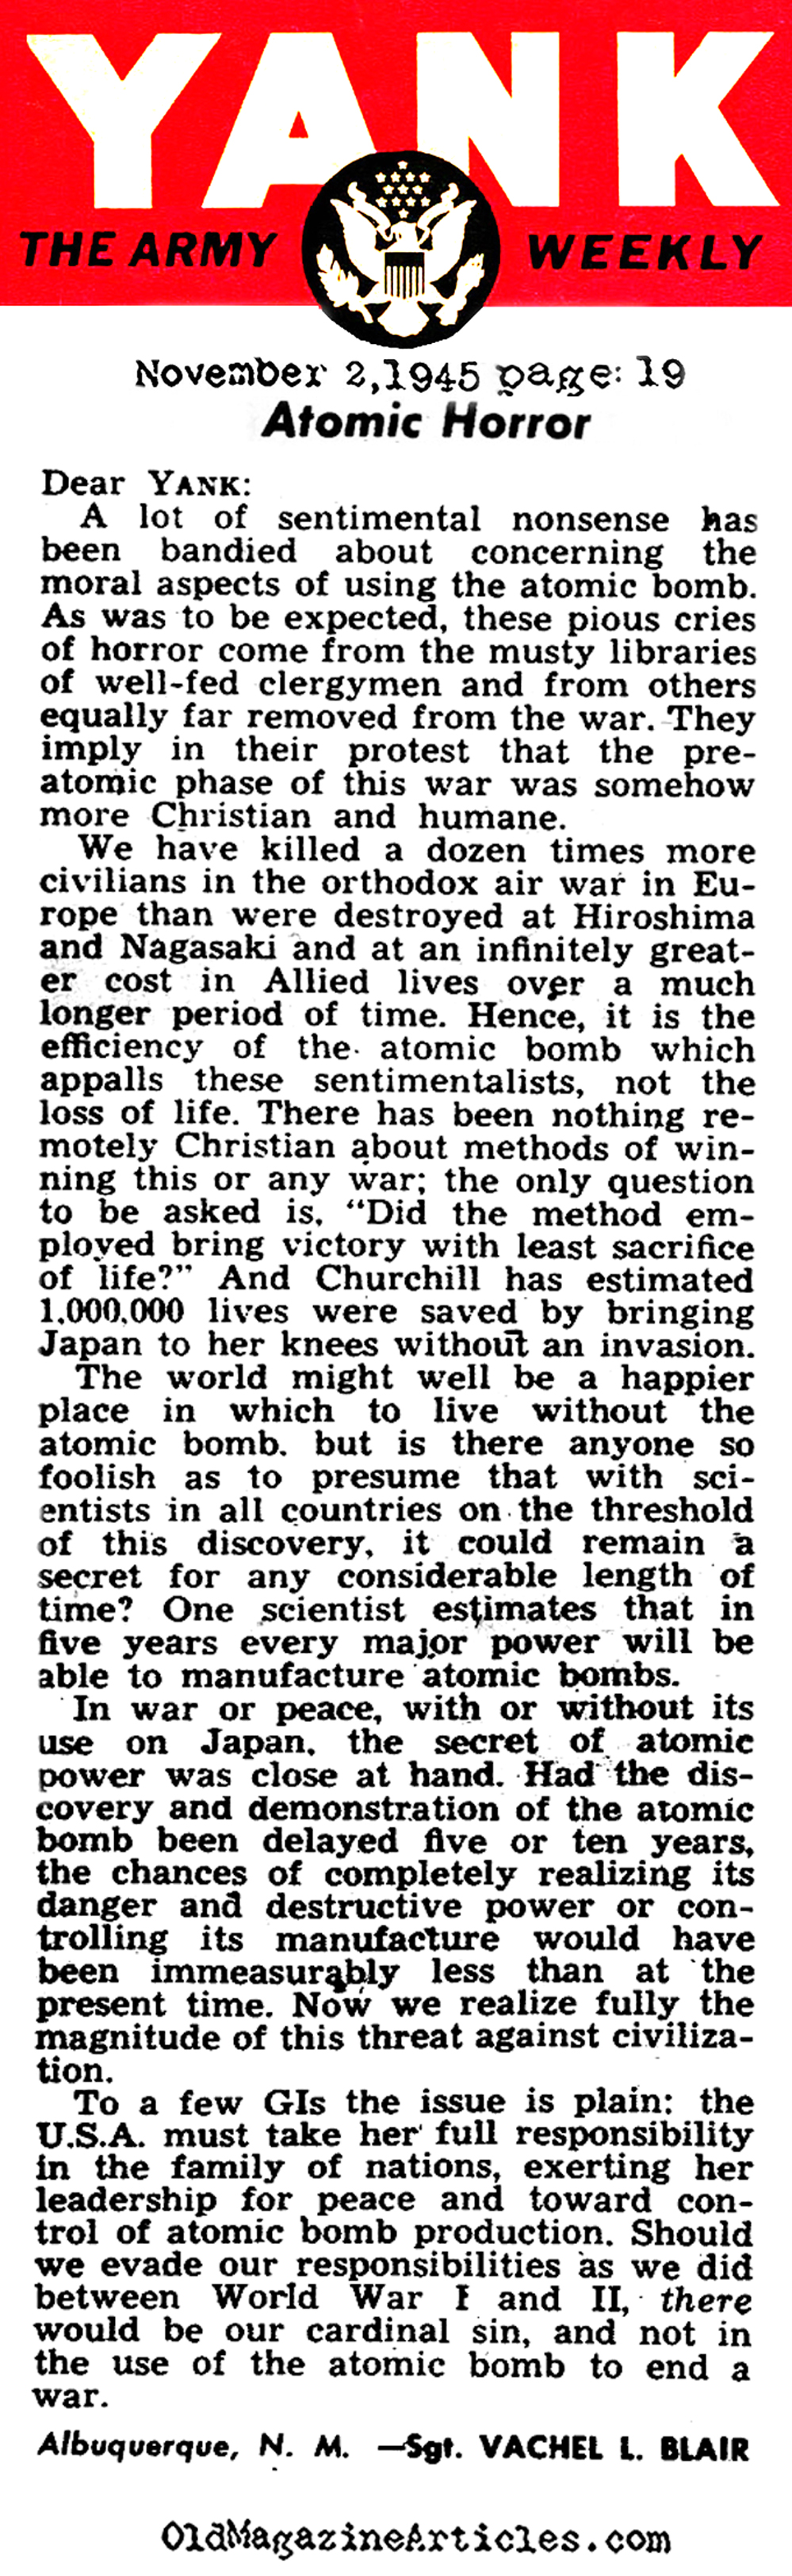 an argument in favor of the necessity of atomic bombing of hiroshima and nagasaki What were the general arguments for and against using atomic bombs to end world war ii what was an argument used in favor of dropping the atomic bomb of hiroshima and nagasaki atomic bombings of hiroshima and nagasaki.